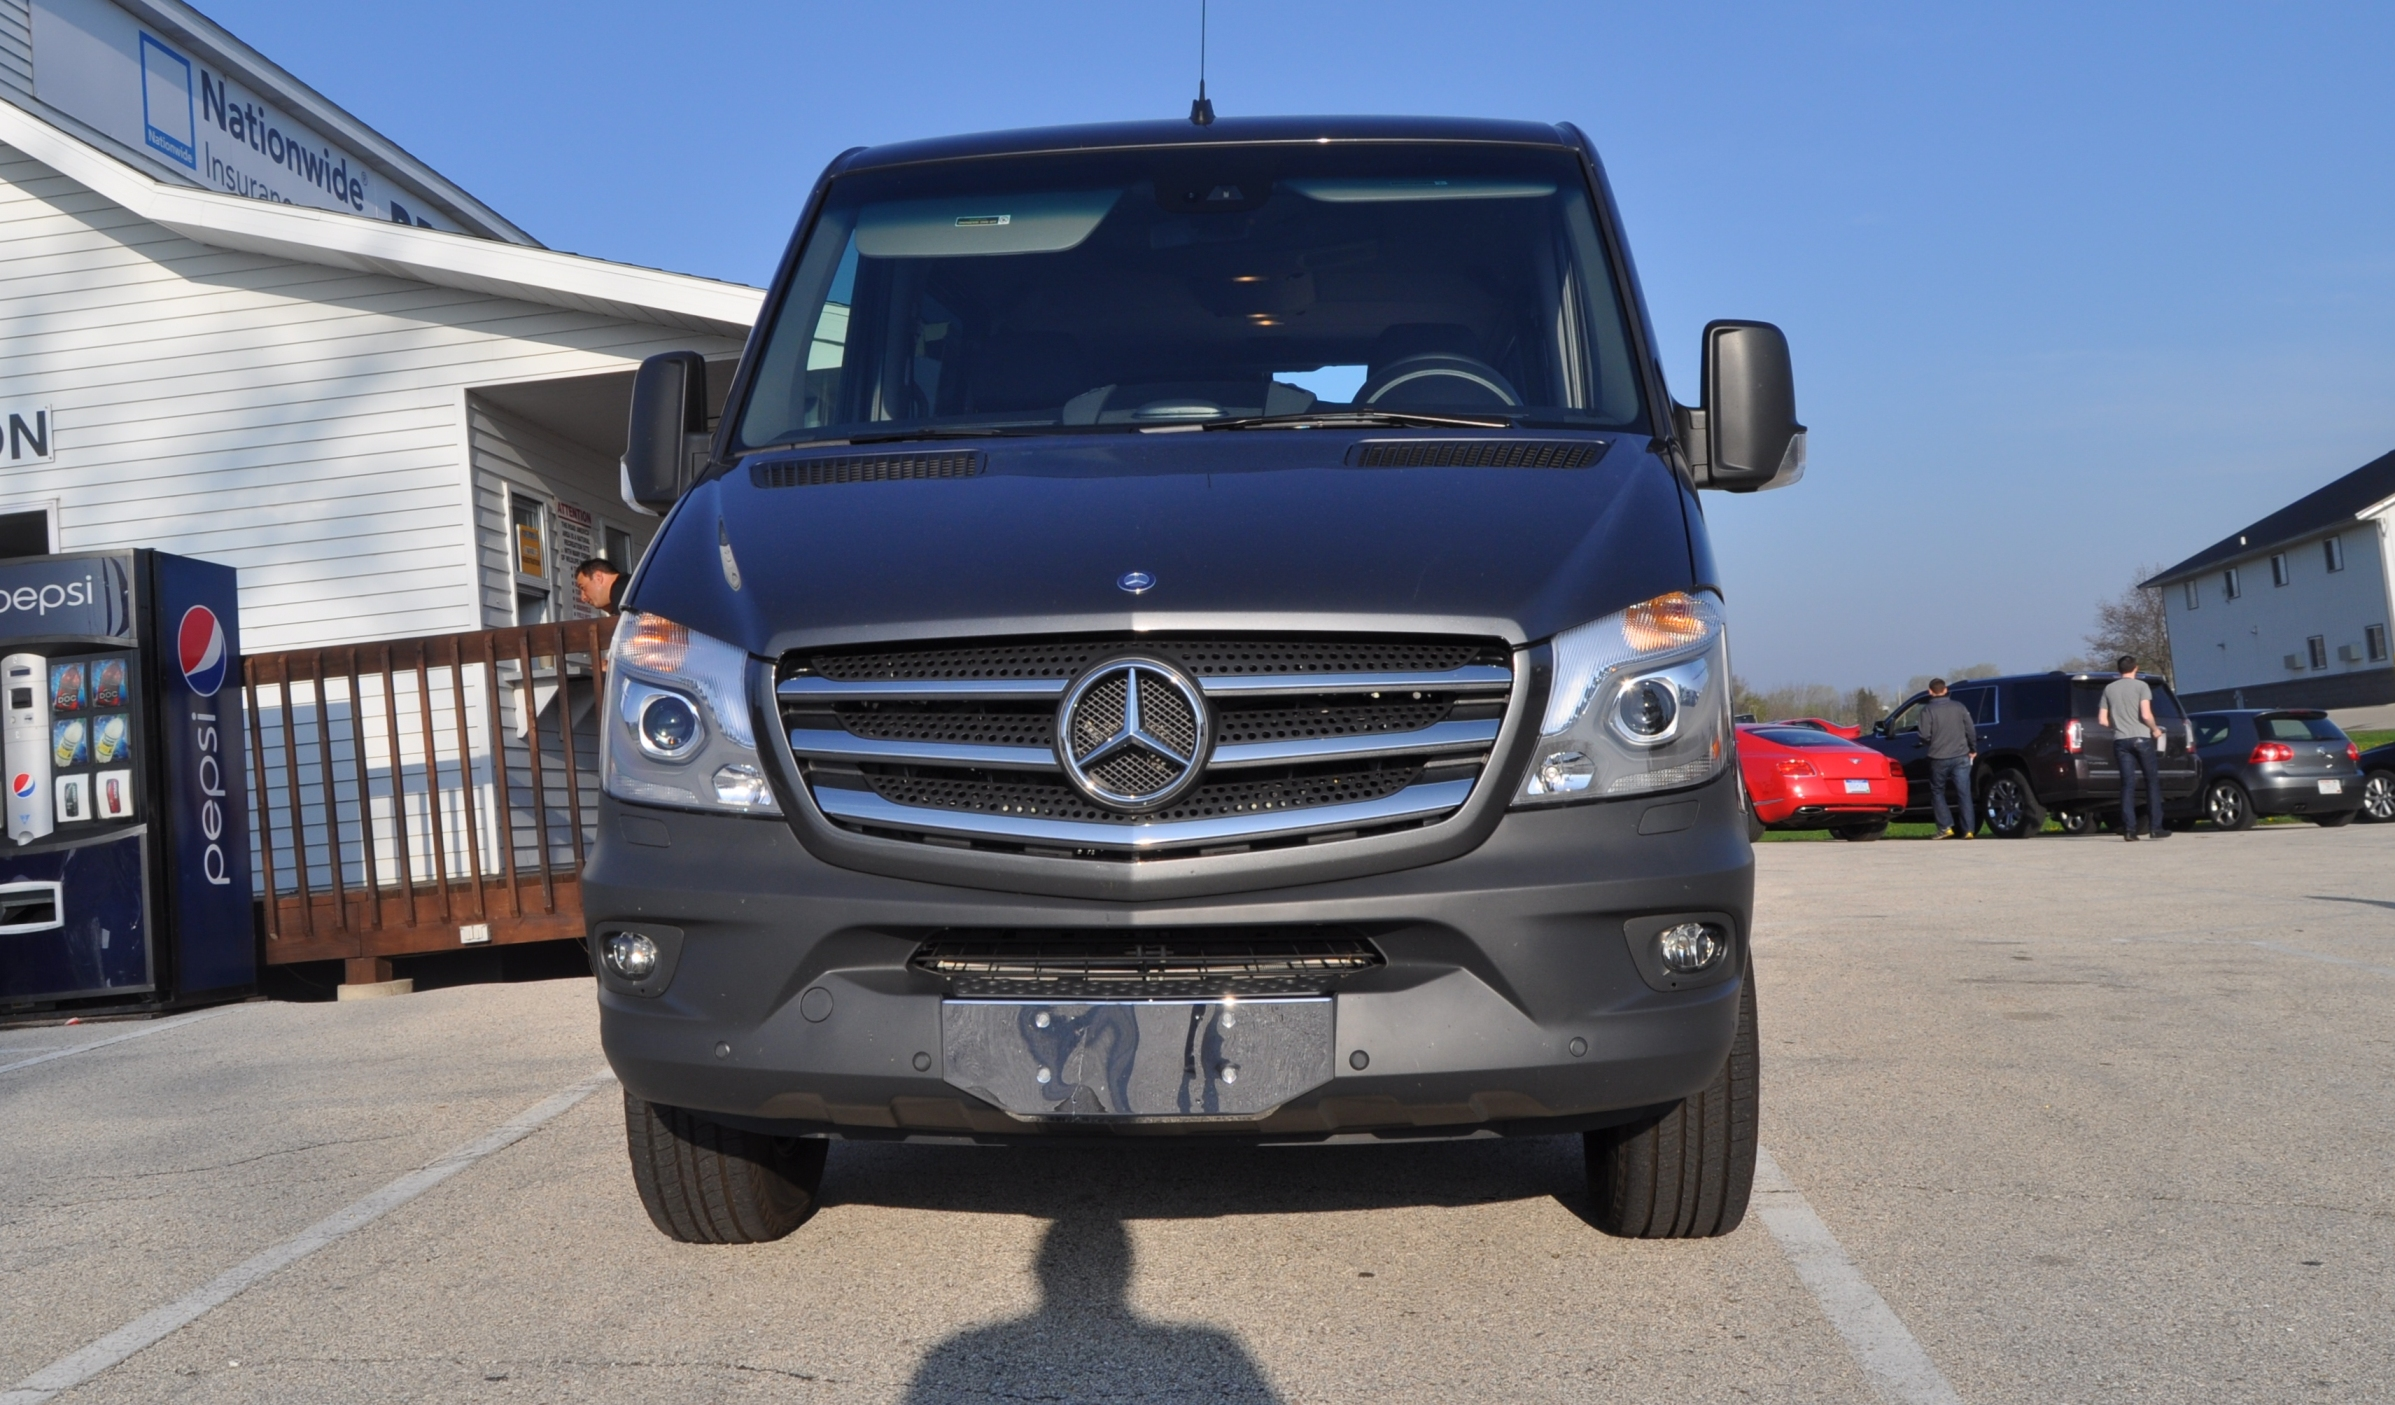 New 2014 Mercedes Benz Sprinter Vans In Real Life 2015 4x4 Model Details 3